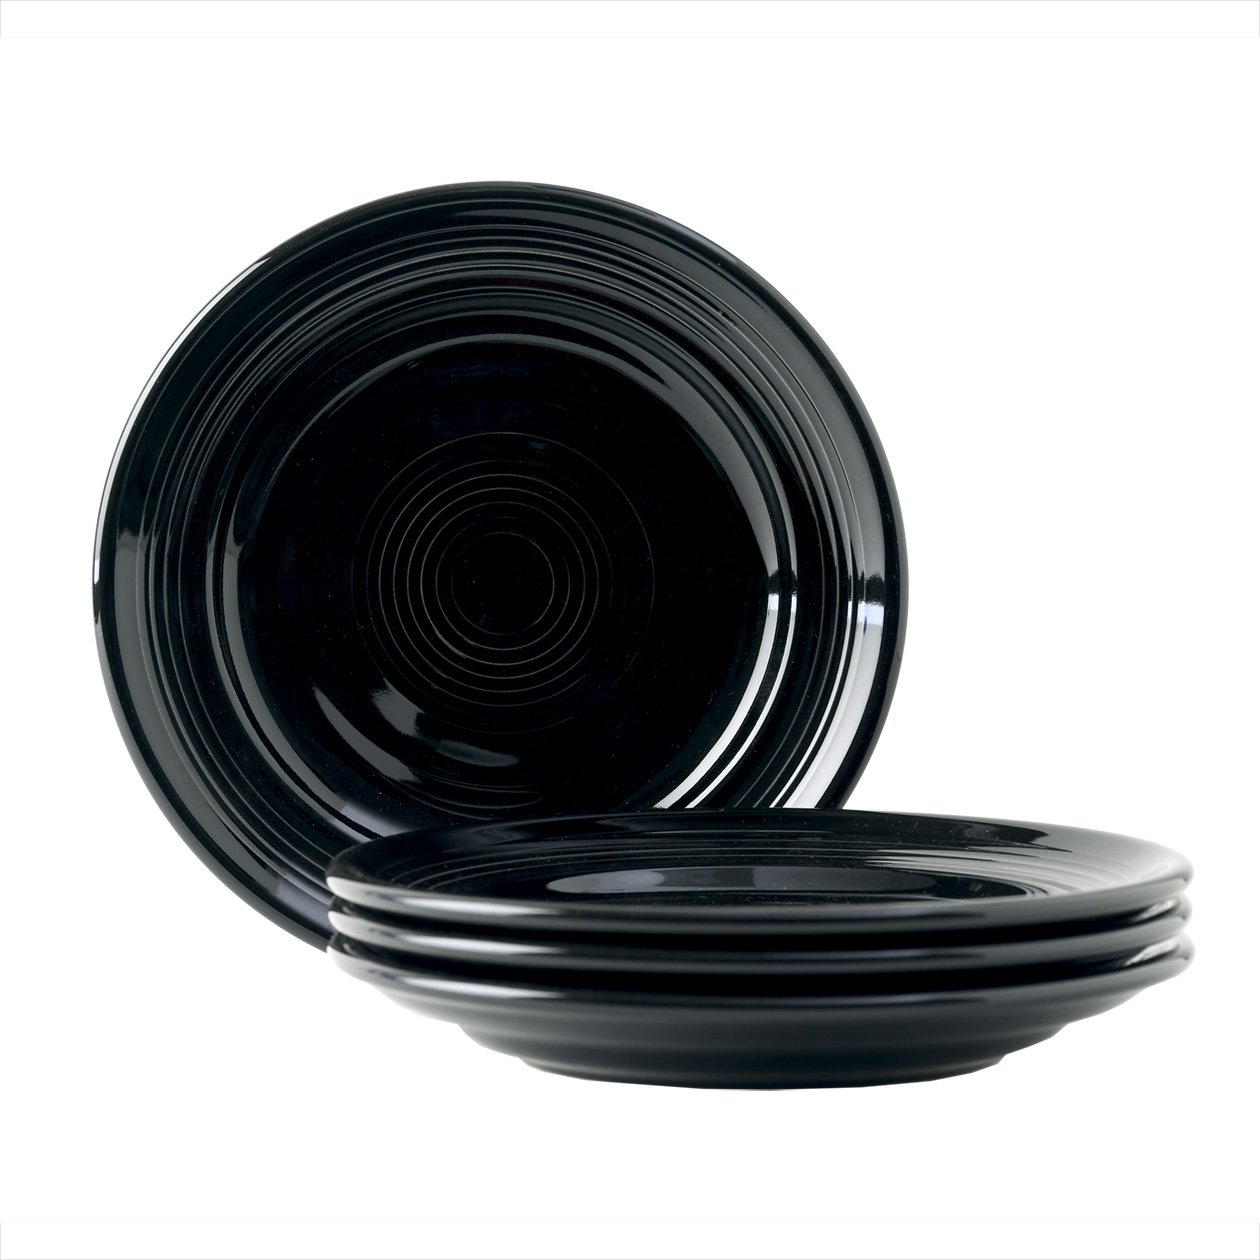 Tuxton Home Concentrix Salad Plate (Set of 4), 7 1/2'', Black; Heavy Duty; Chip Resistant; Lead and Cadmium Free; Freezer to Oven Safe up to 500F